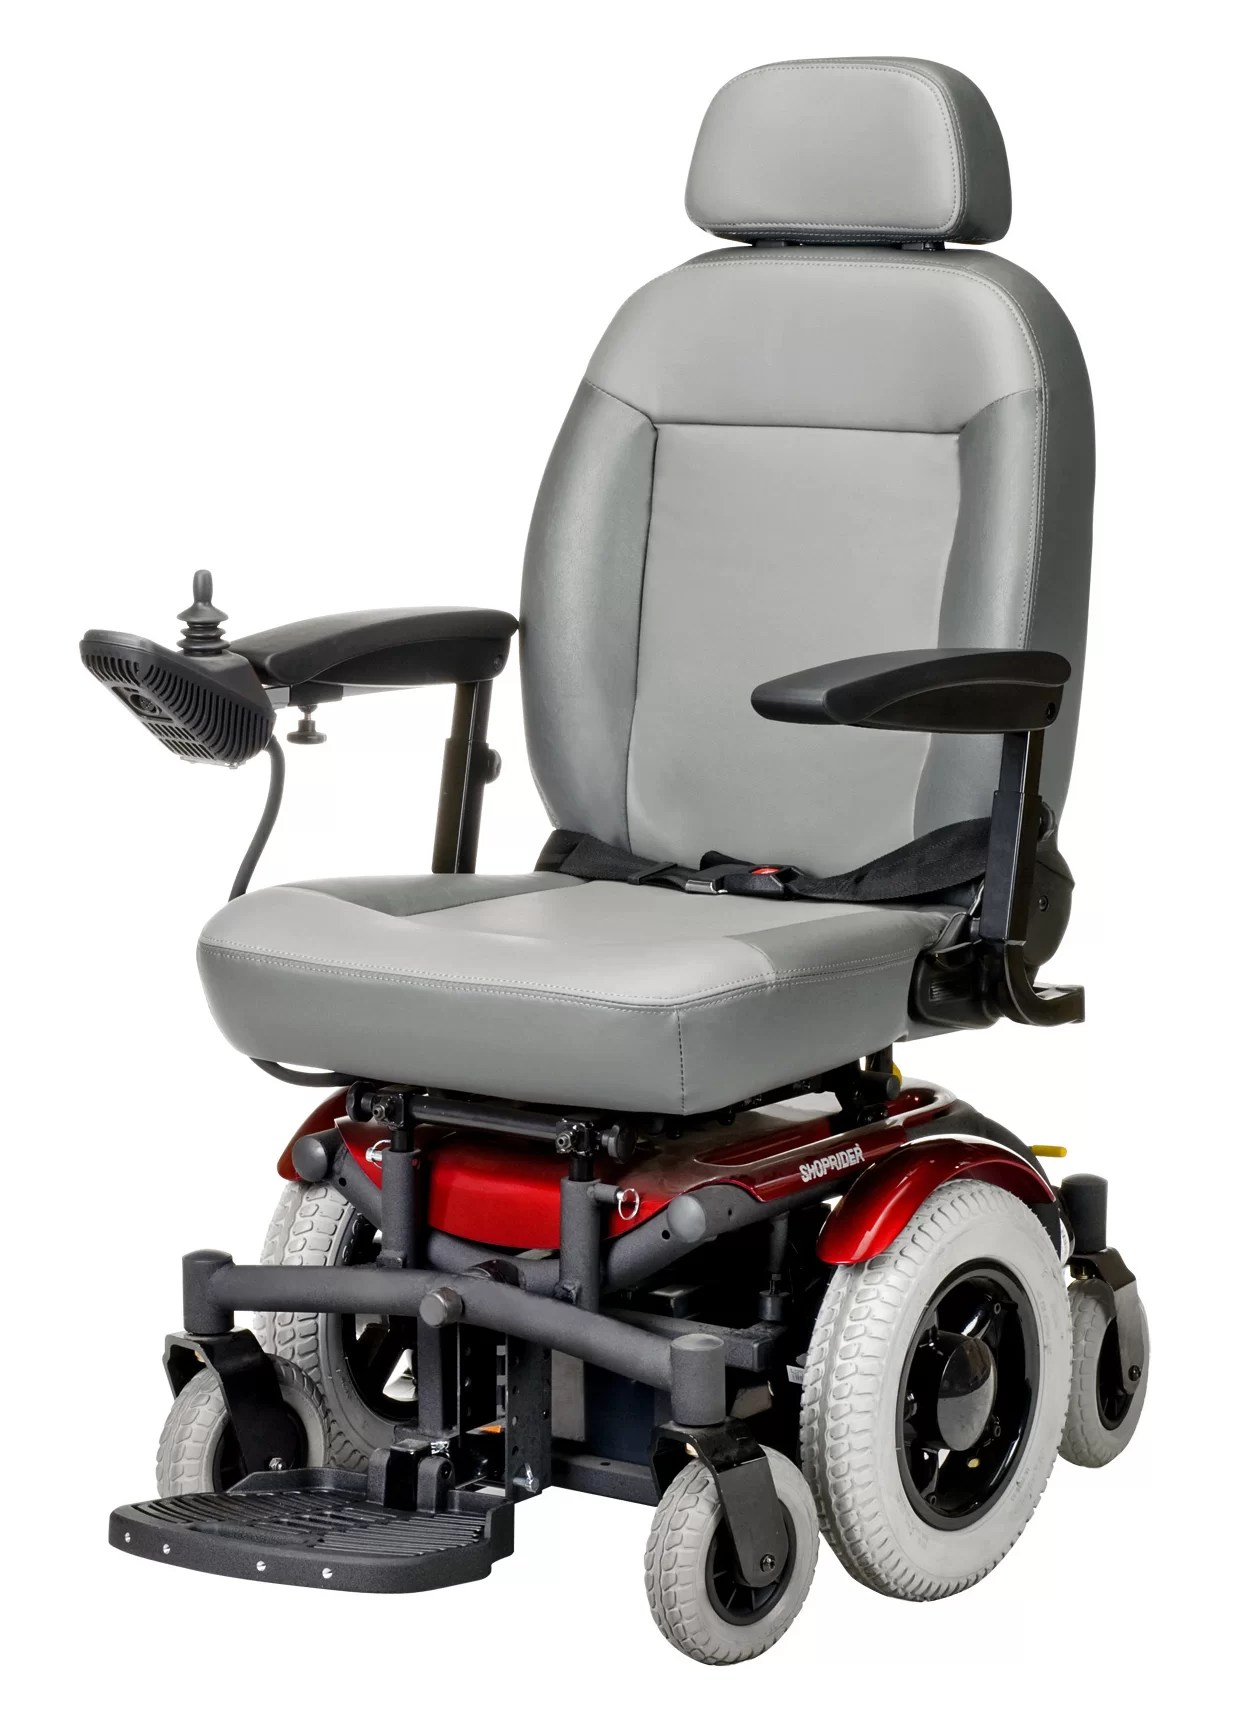 Power Chairs And Scooters Shoprider 6 Runner 14 Power Chair Electric Wheelchair Mid